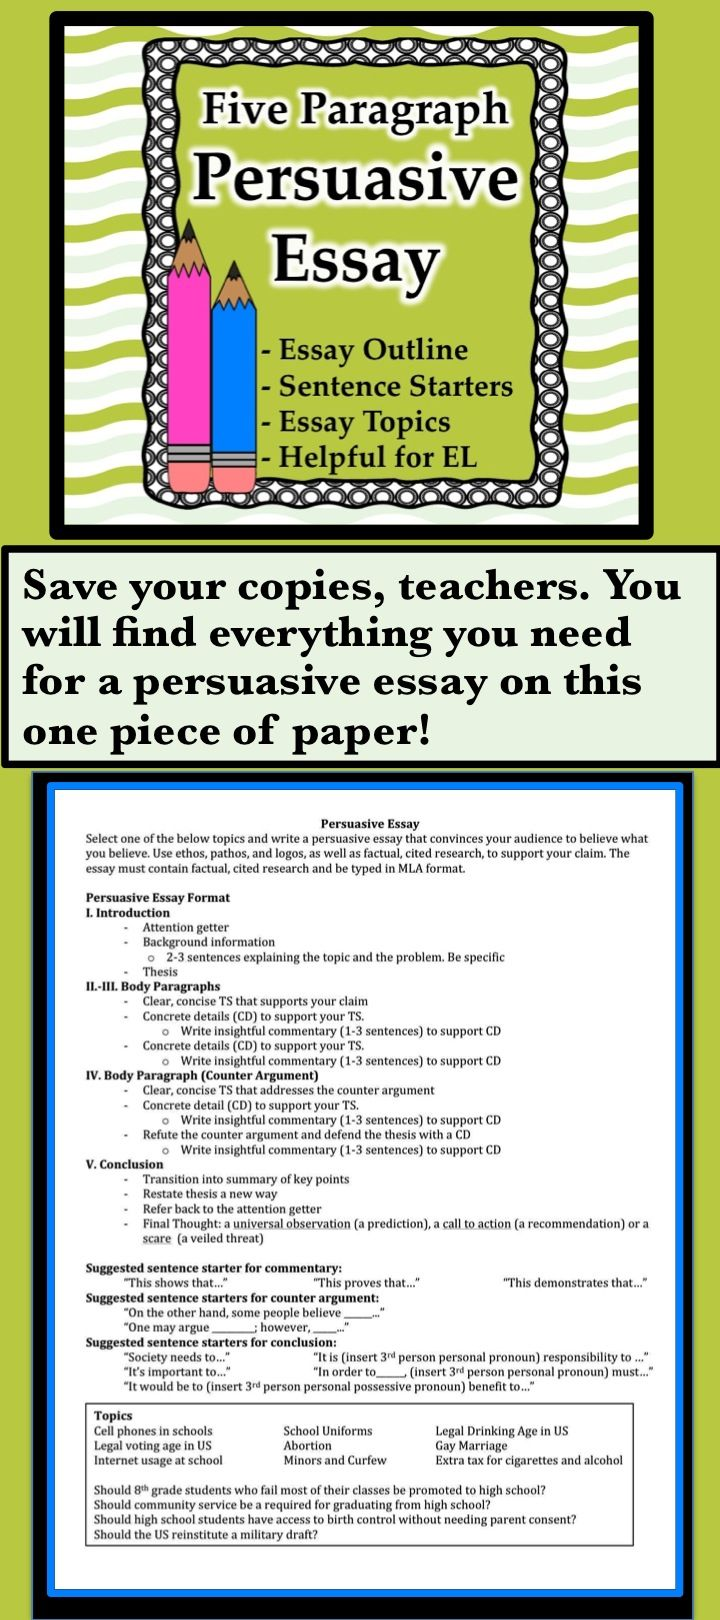 College Essays Examples  Best Ideas About Persuasive Essay Topics Essay  Best Ideas About Persuasive  Essay Topics Essay Example Of Essay For College also Music Essays Persuasive Essay Topics Ideas  Best Ideas About Persuasive Essay  Sample Essay For Elementary Students